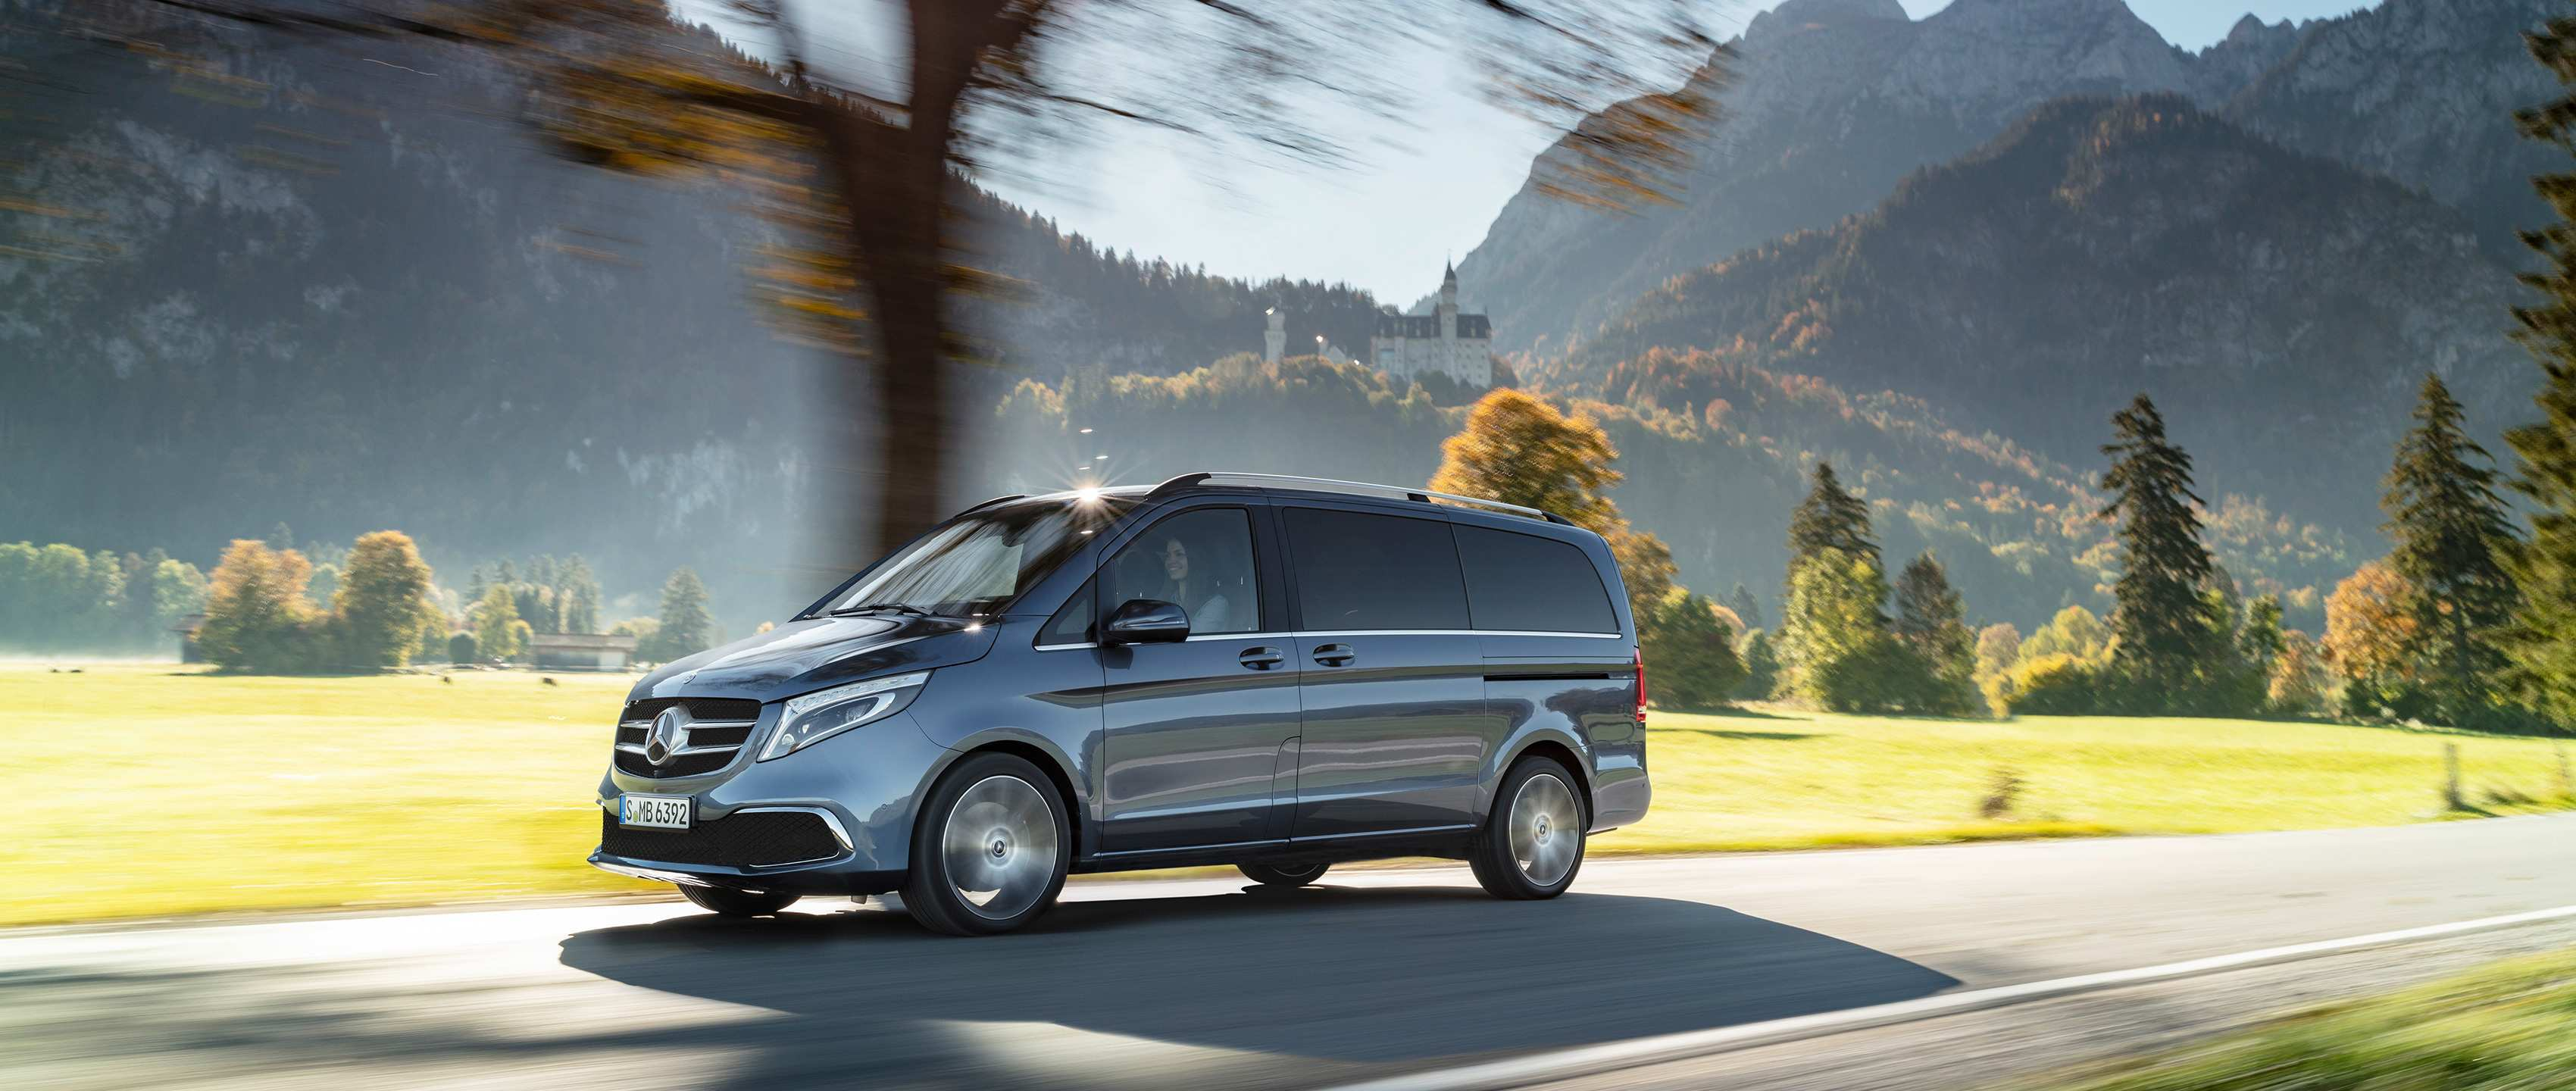 76 A Mercedes V Klasse 2019 Ratings